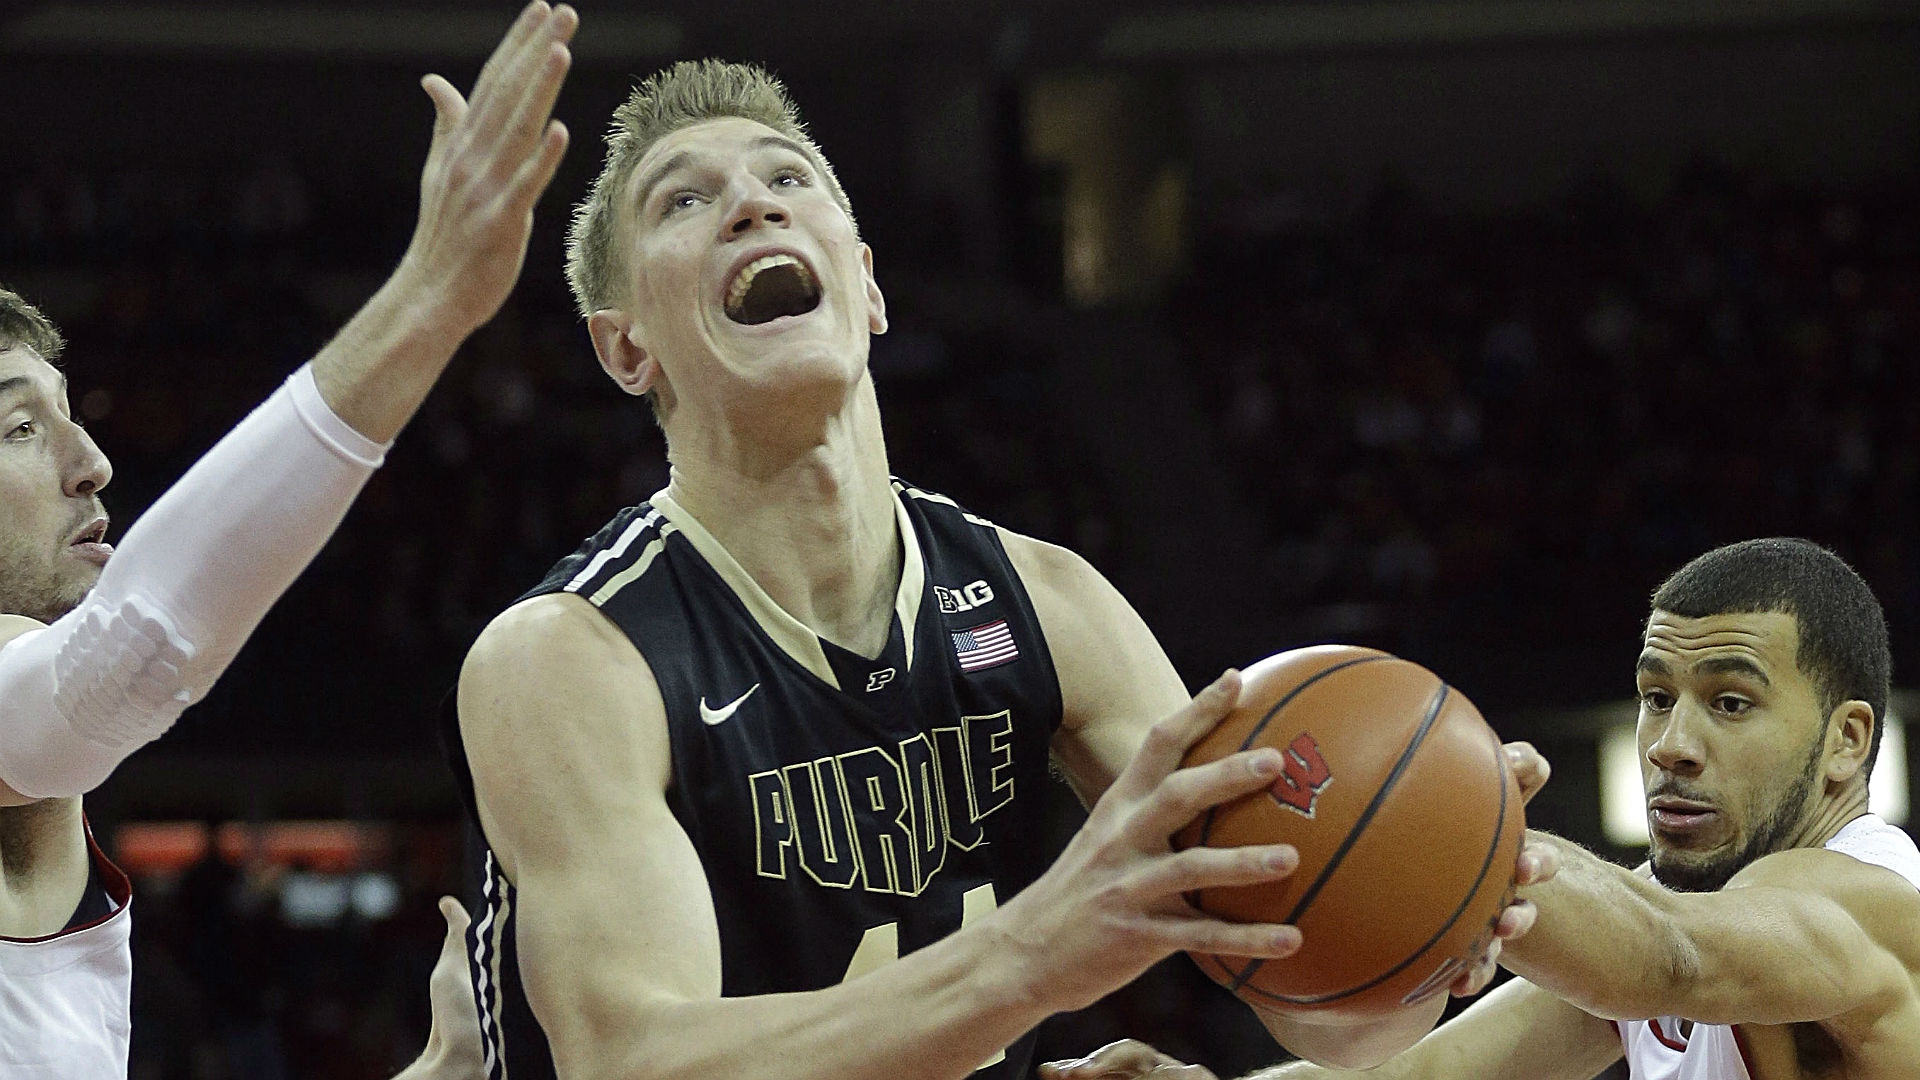 College basketball betting lines and picks – Purdue visits Indiana, looks for eighth straight cover